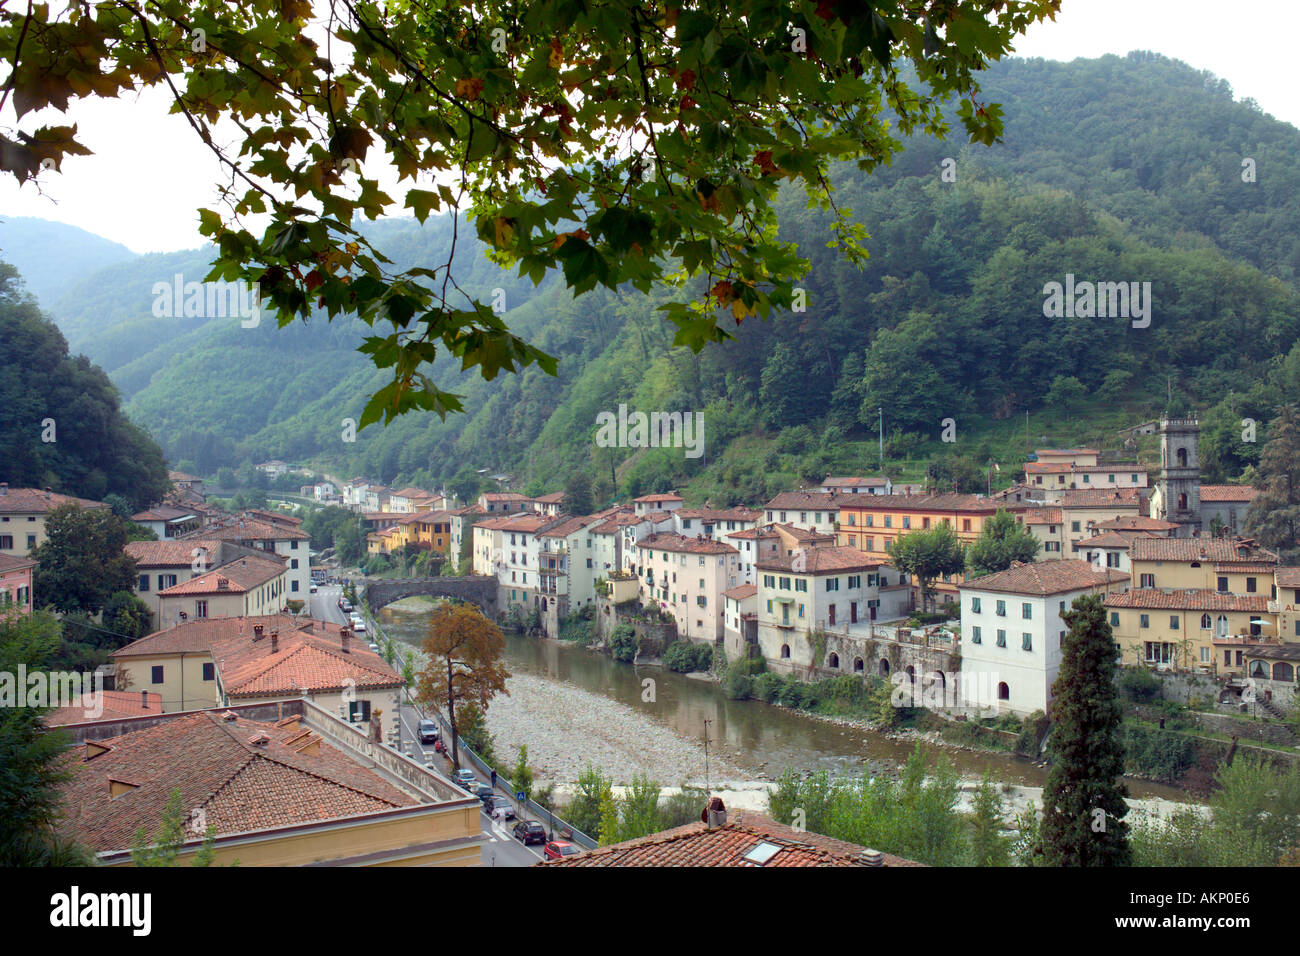 bagni di lucca northern tuscany italy spa town river lima lucca